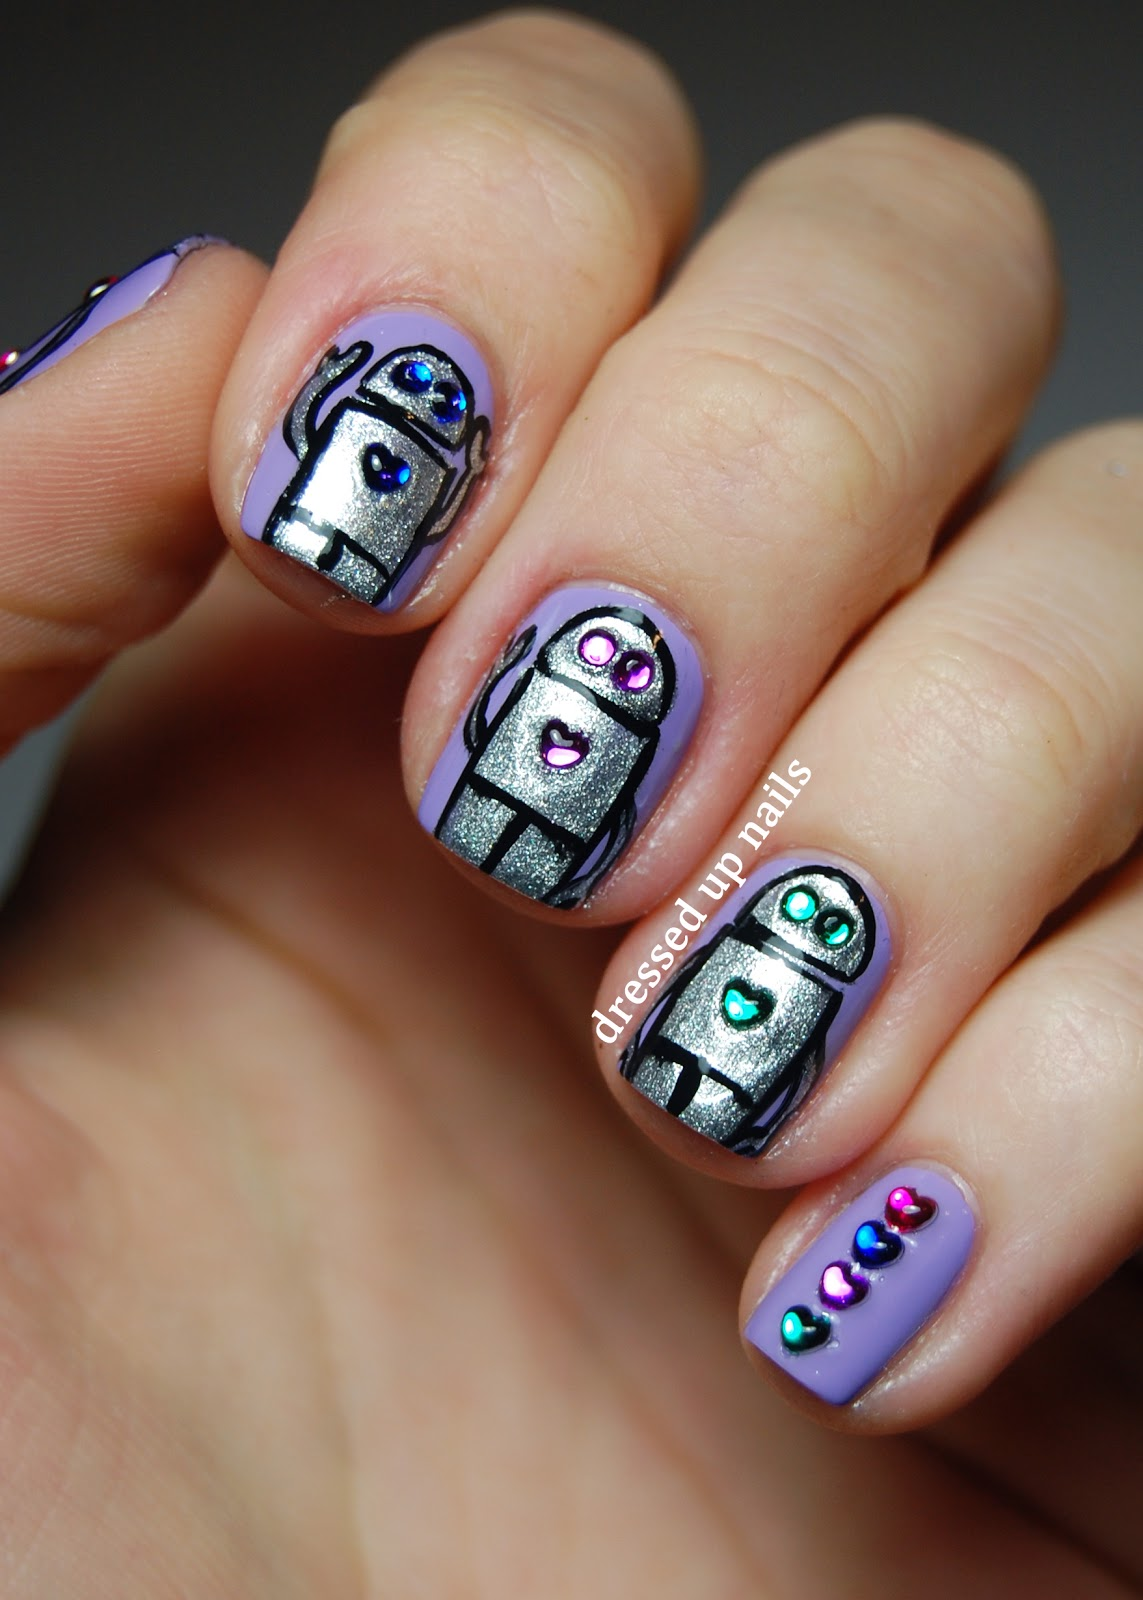 How to do nail designs at home 2017 2018 best cars reviews - Pretty easy nail designs to do at home ...